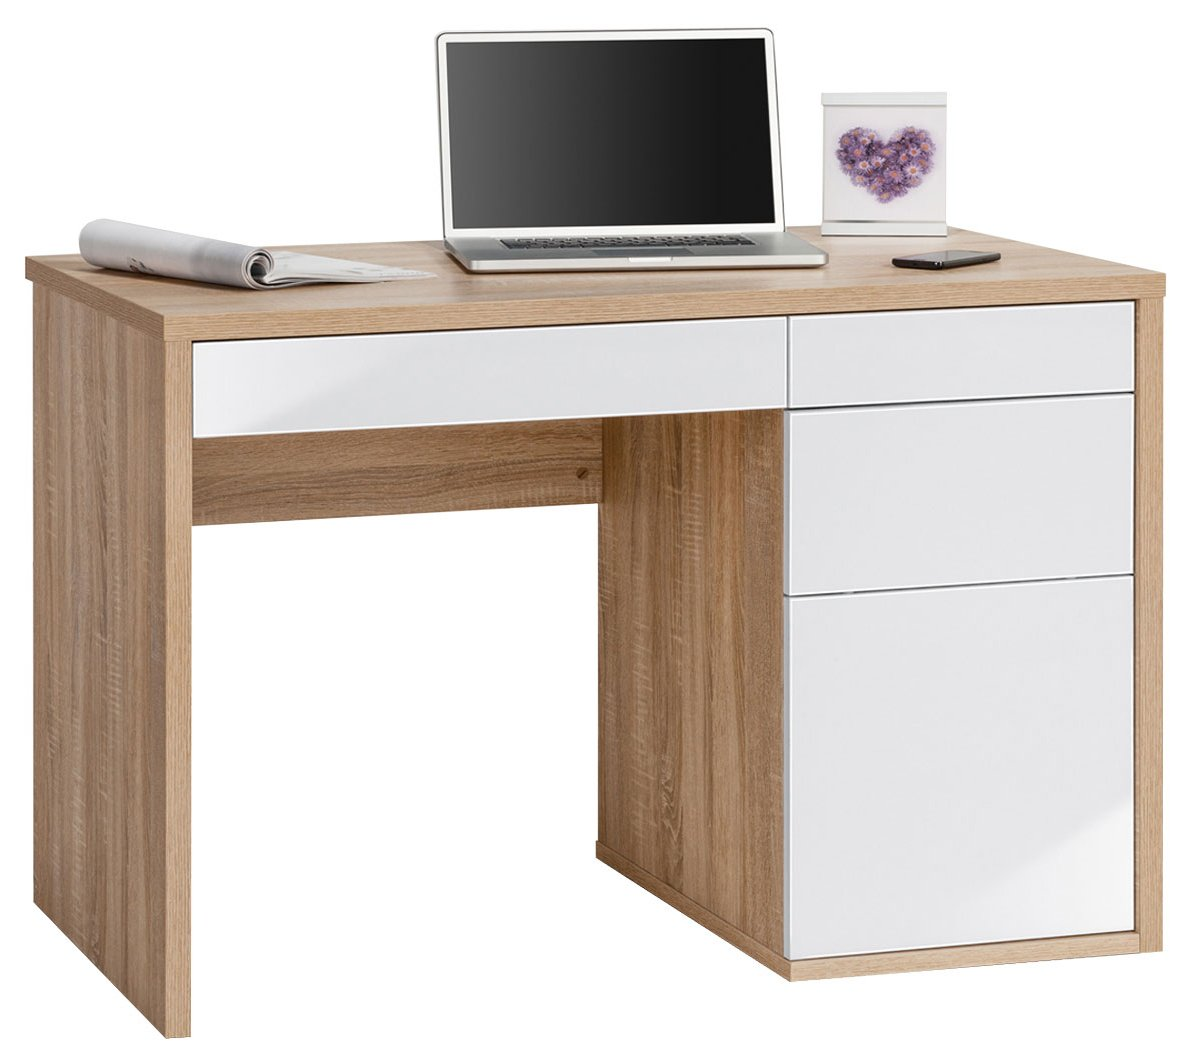 Maja Club Oak Amp White Computer Desk